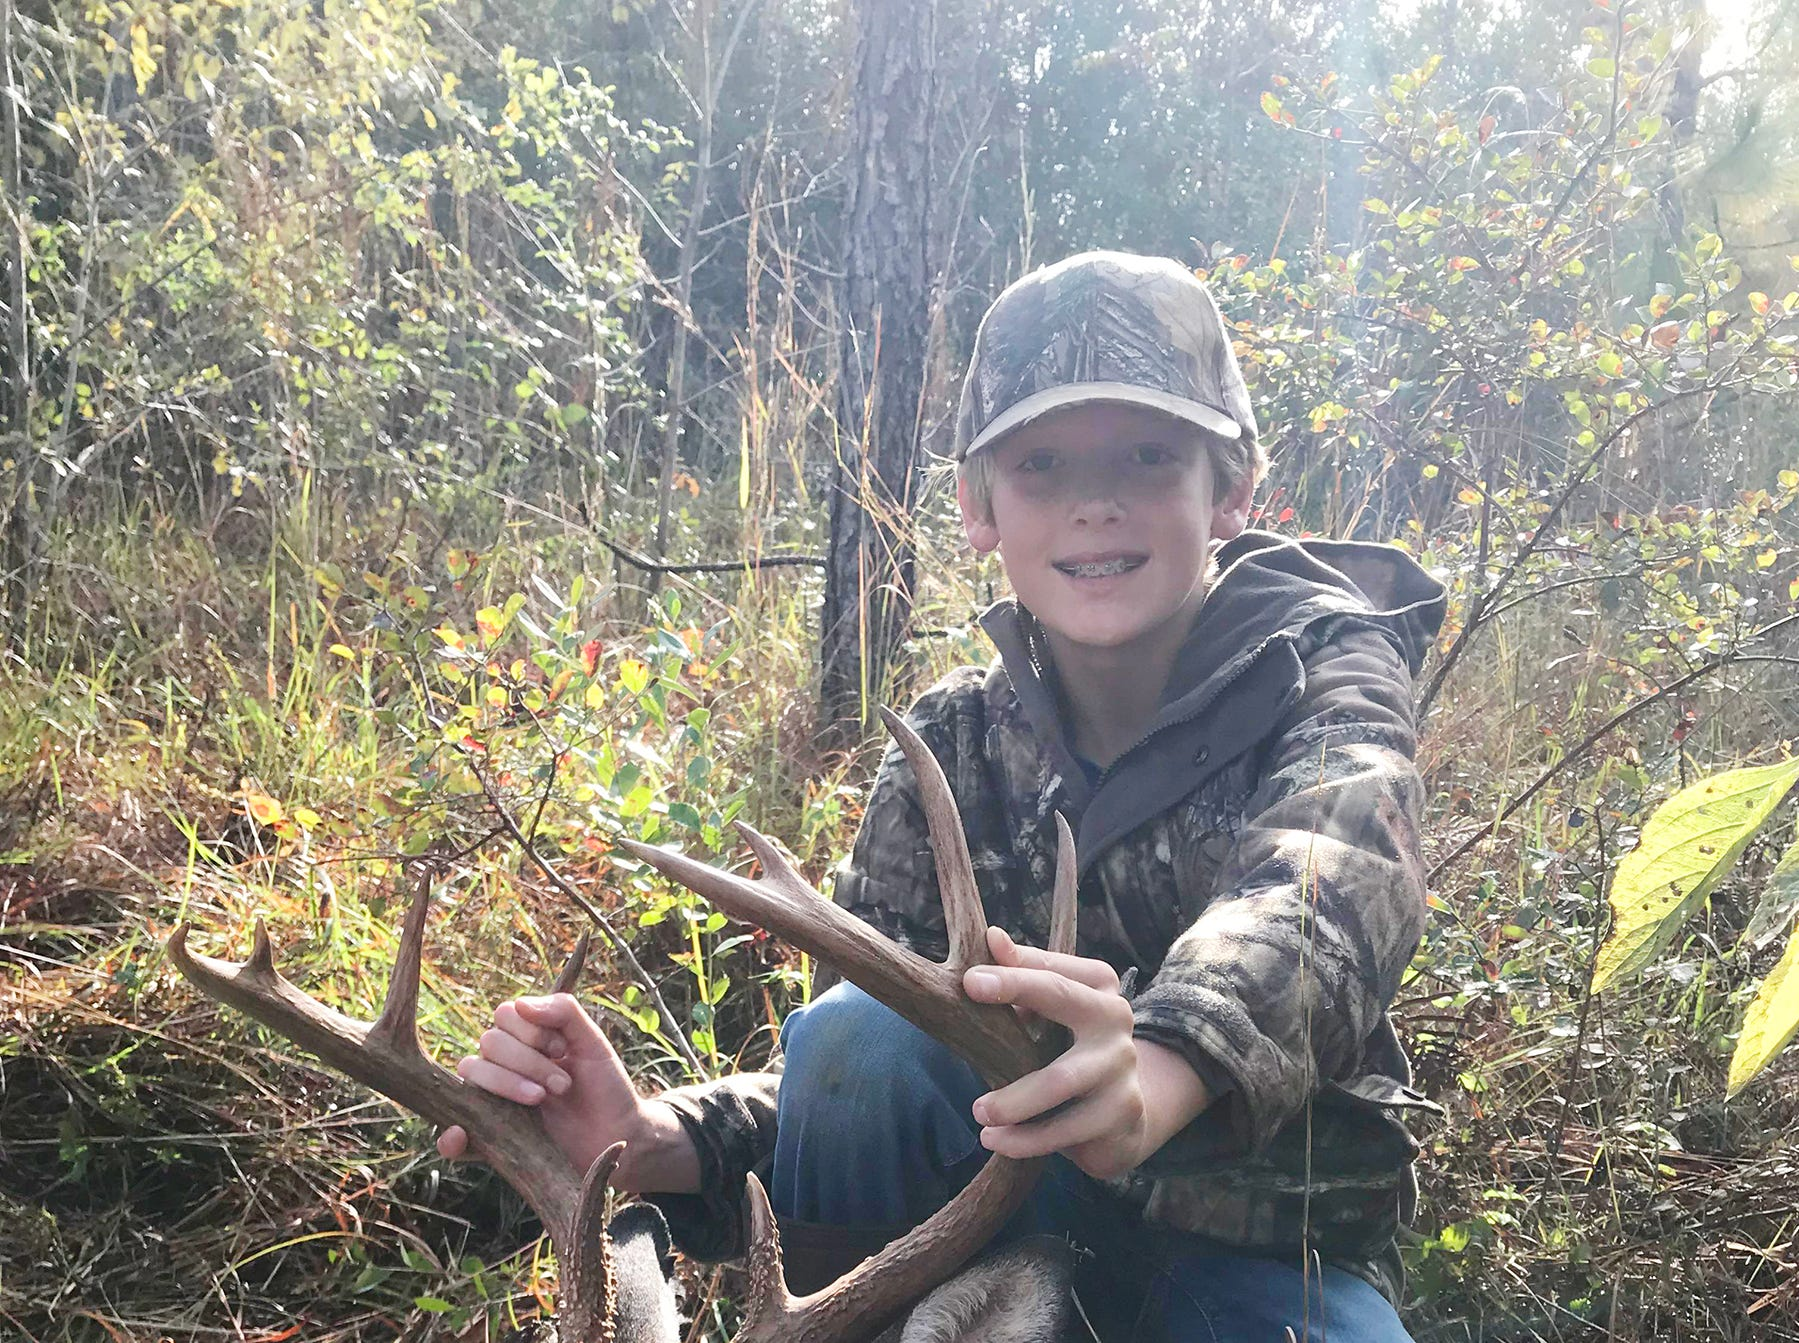 Gaines Russum, 10, of Hattiesburg, harvested a 10-point while hunting with his father this season. It was his first deer.